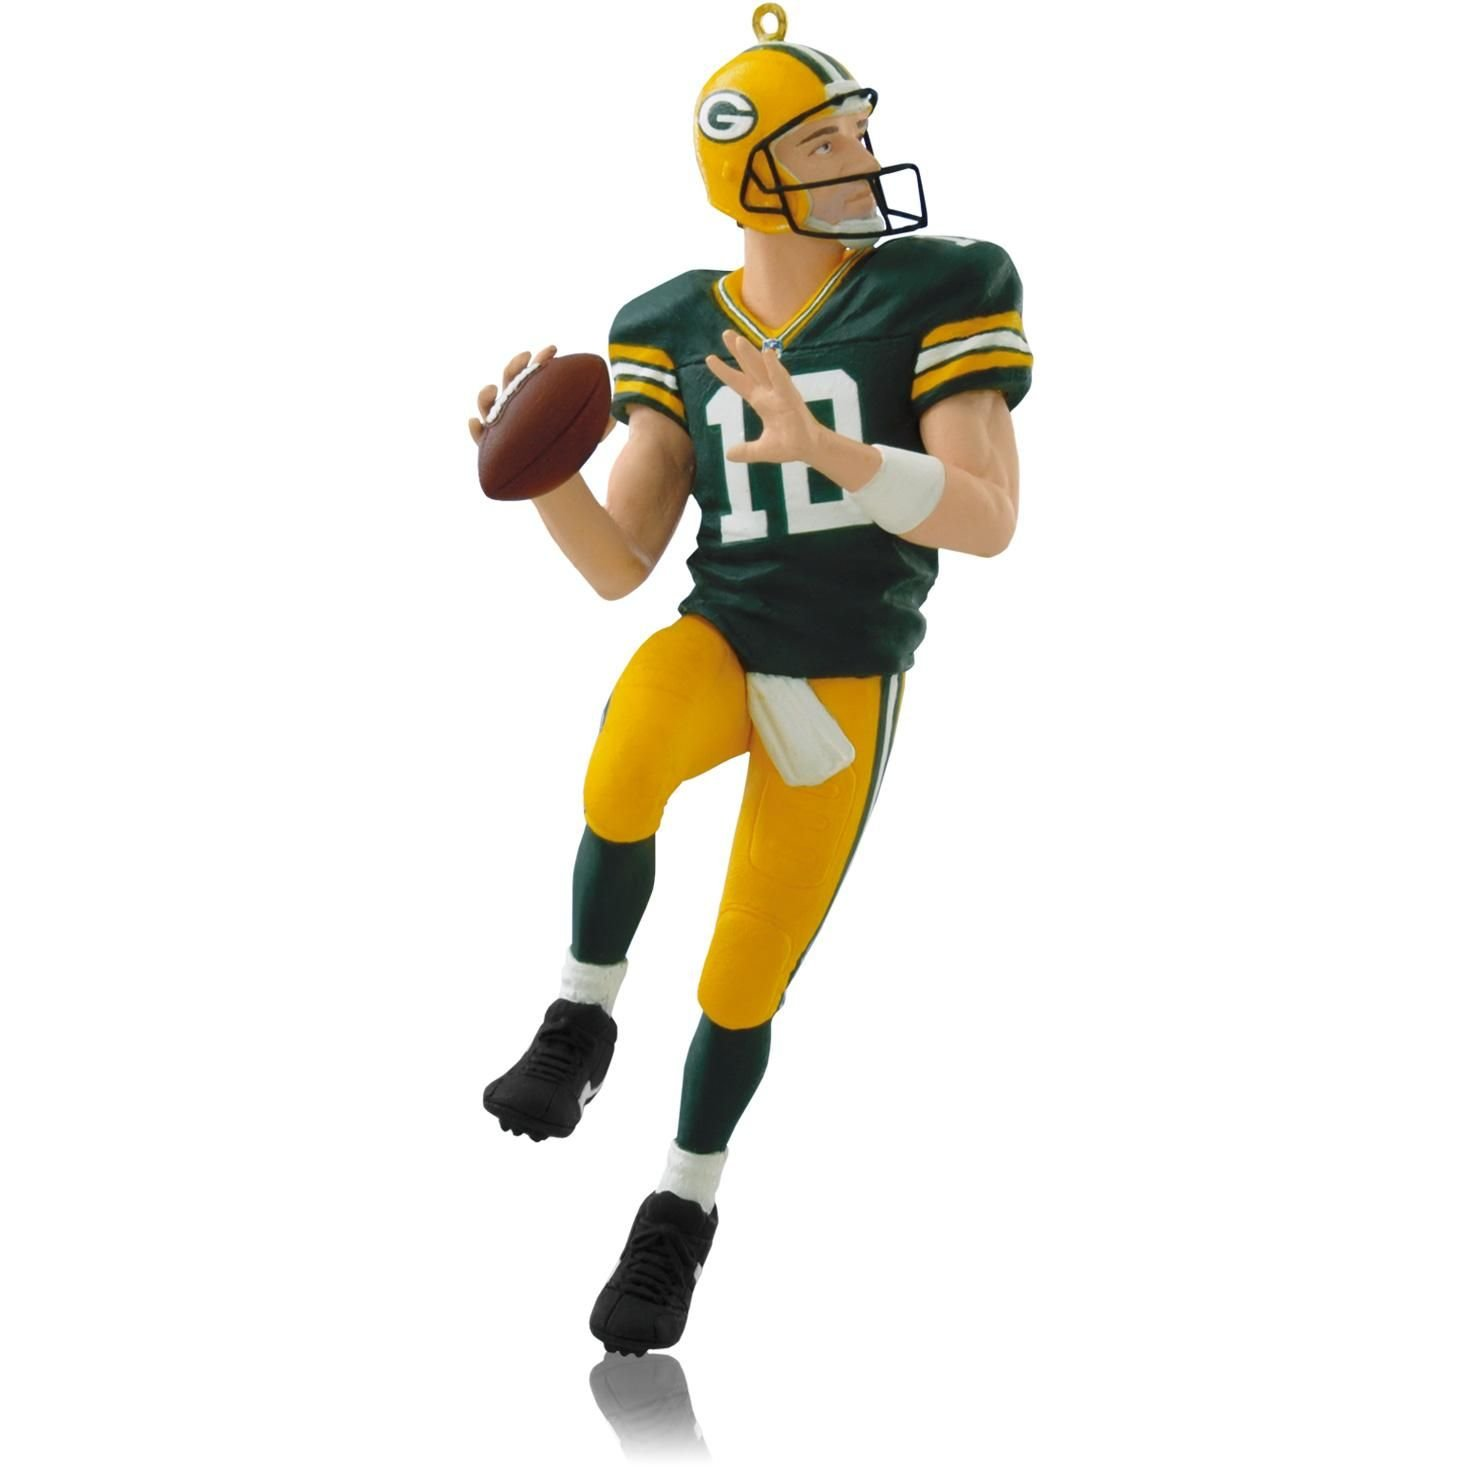 Amazoncom TNA Aaron Rodgers Green Bay Packers 20th In The